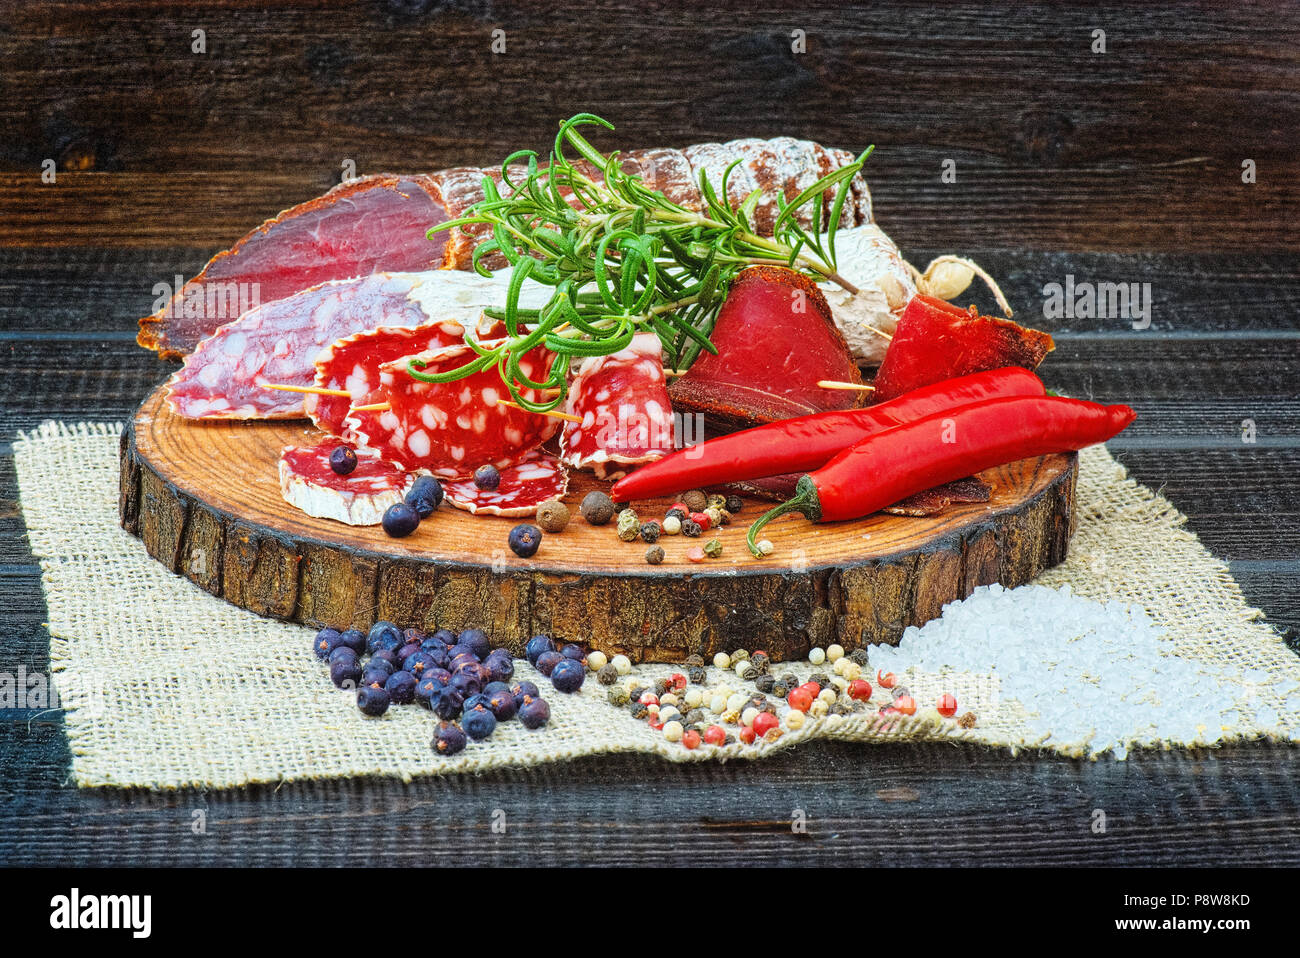 Sliced cured sausage and bresaola with spices and a sprig of rosemary on dark wooden rustic background. - Stock Image